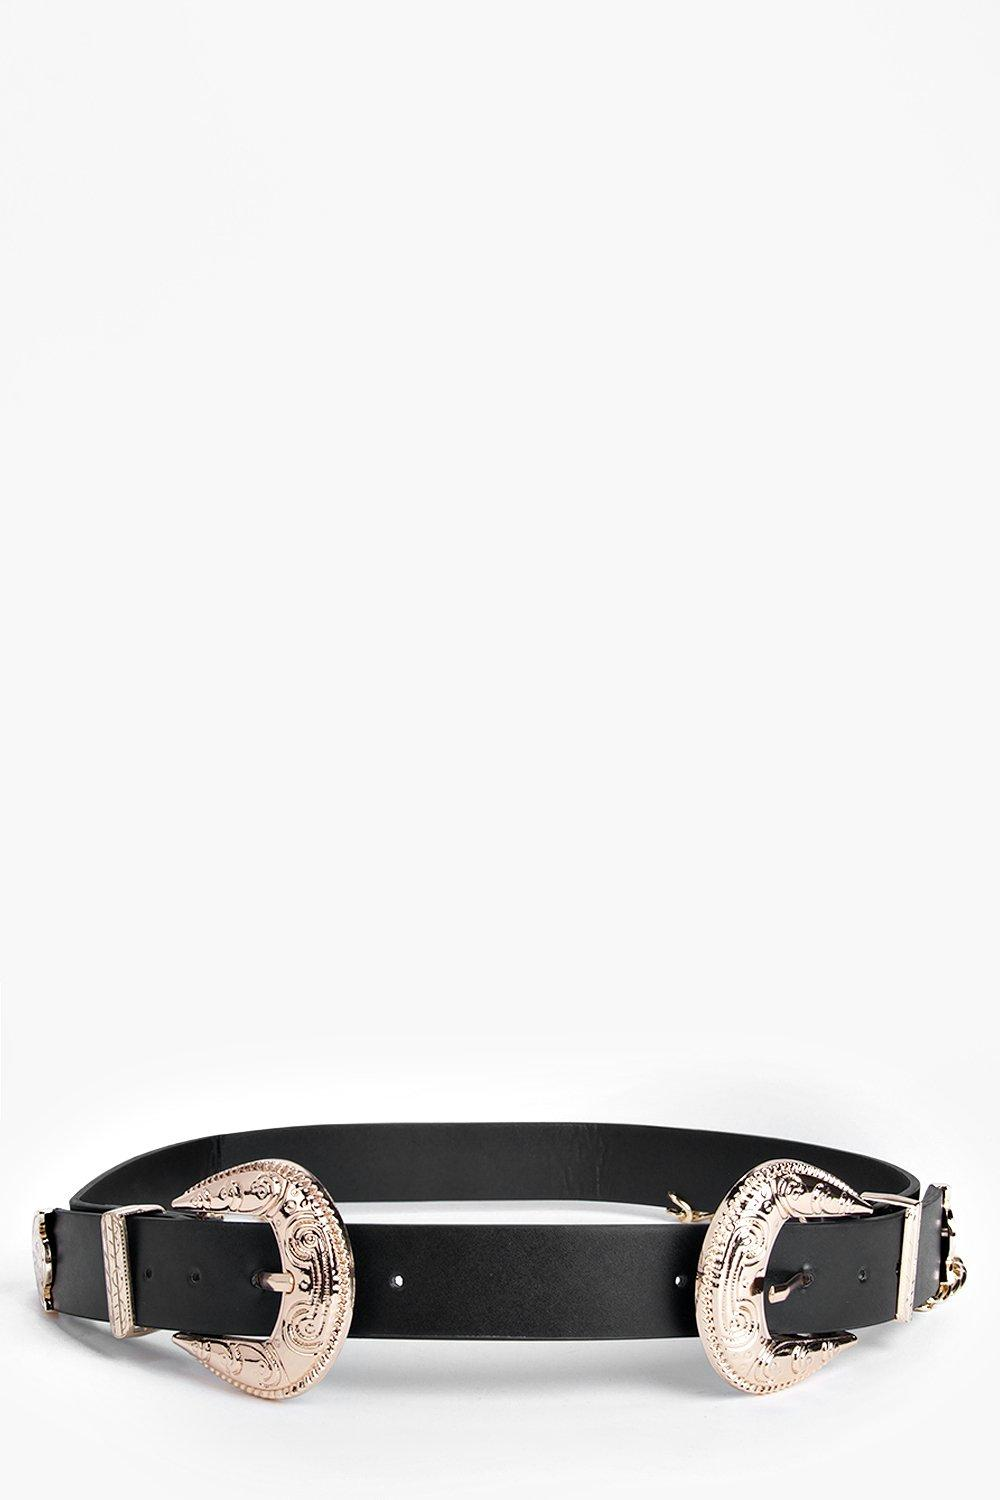 f1ad0900e Womens Black Lois Chain Double Buckle Western Belt. Hover to zoom